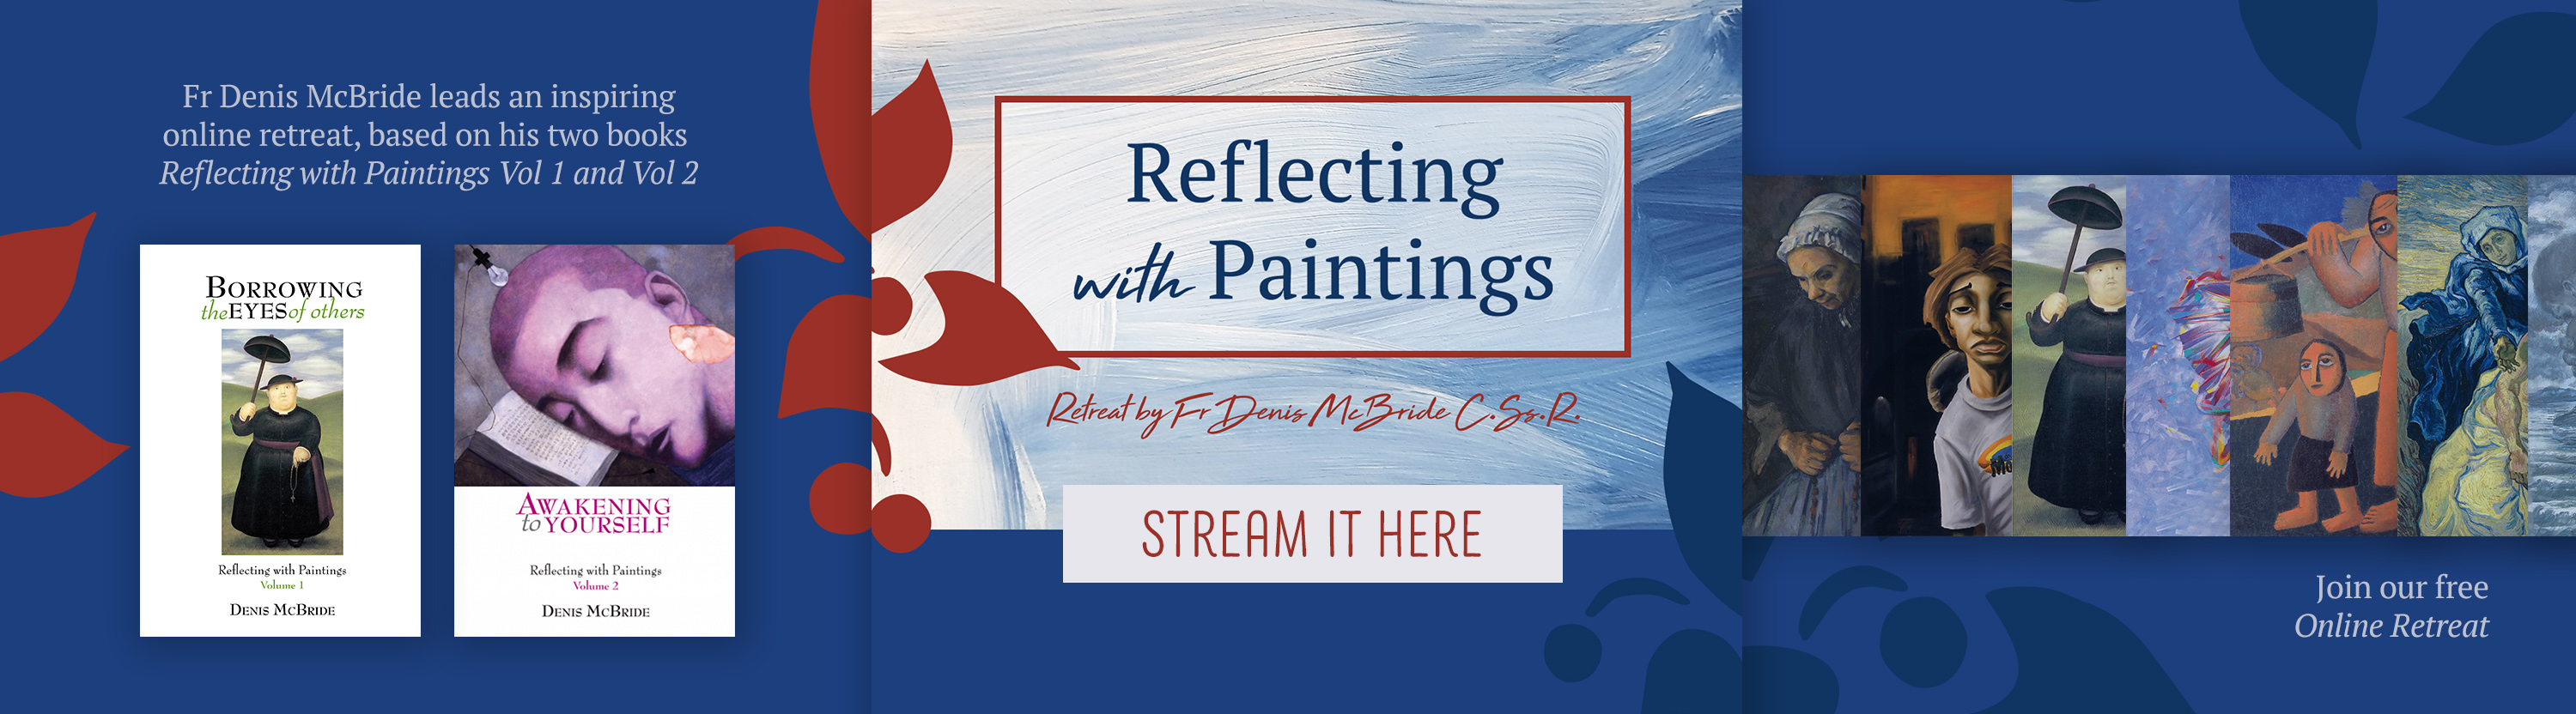 Lenten Retreat | Reflecting with Paintings